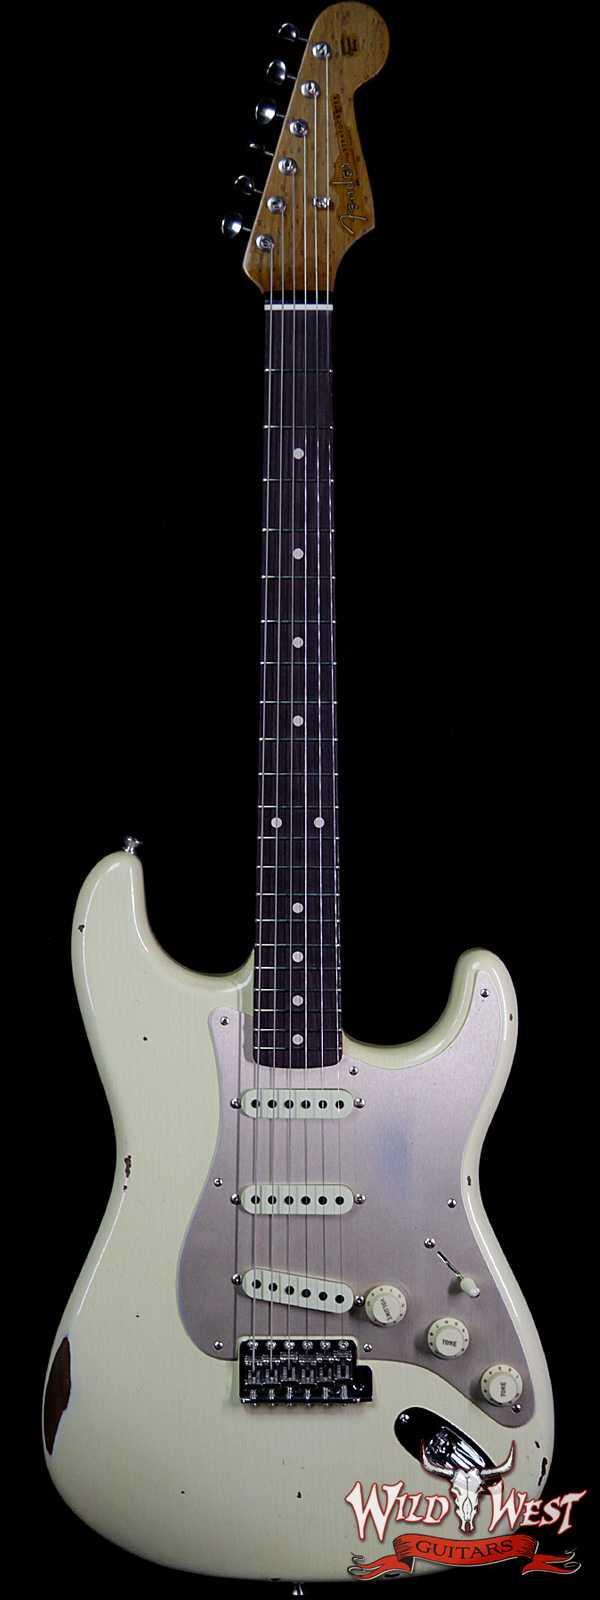 Fender Custom Shop Roasted 1960 Stratocaster Relic AAA Birdseye Maple Neck 3A Rosewood Slab Board Aged Vintage White